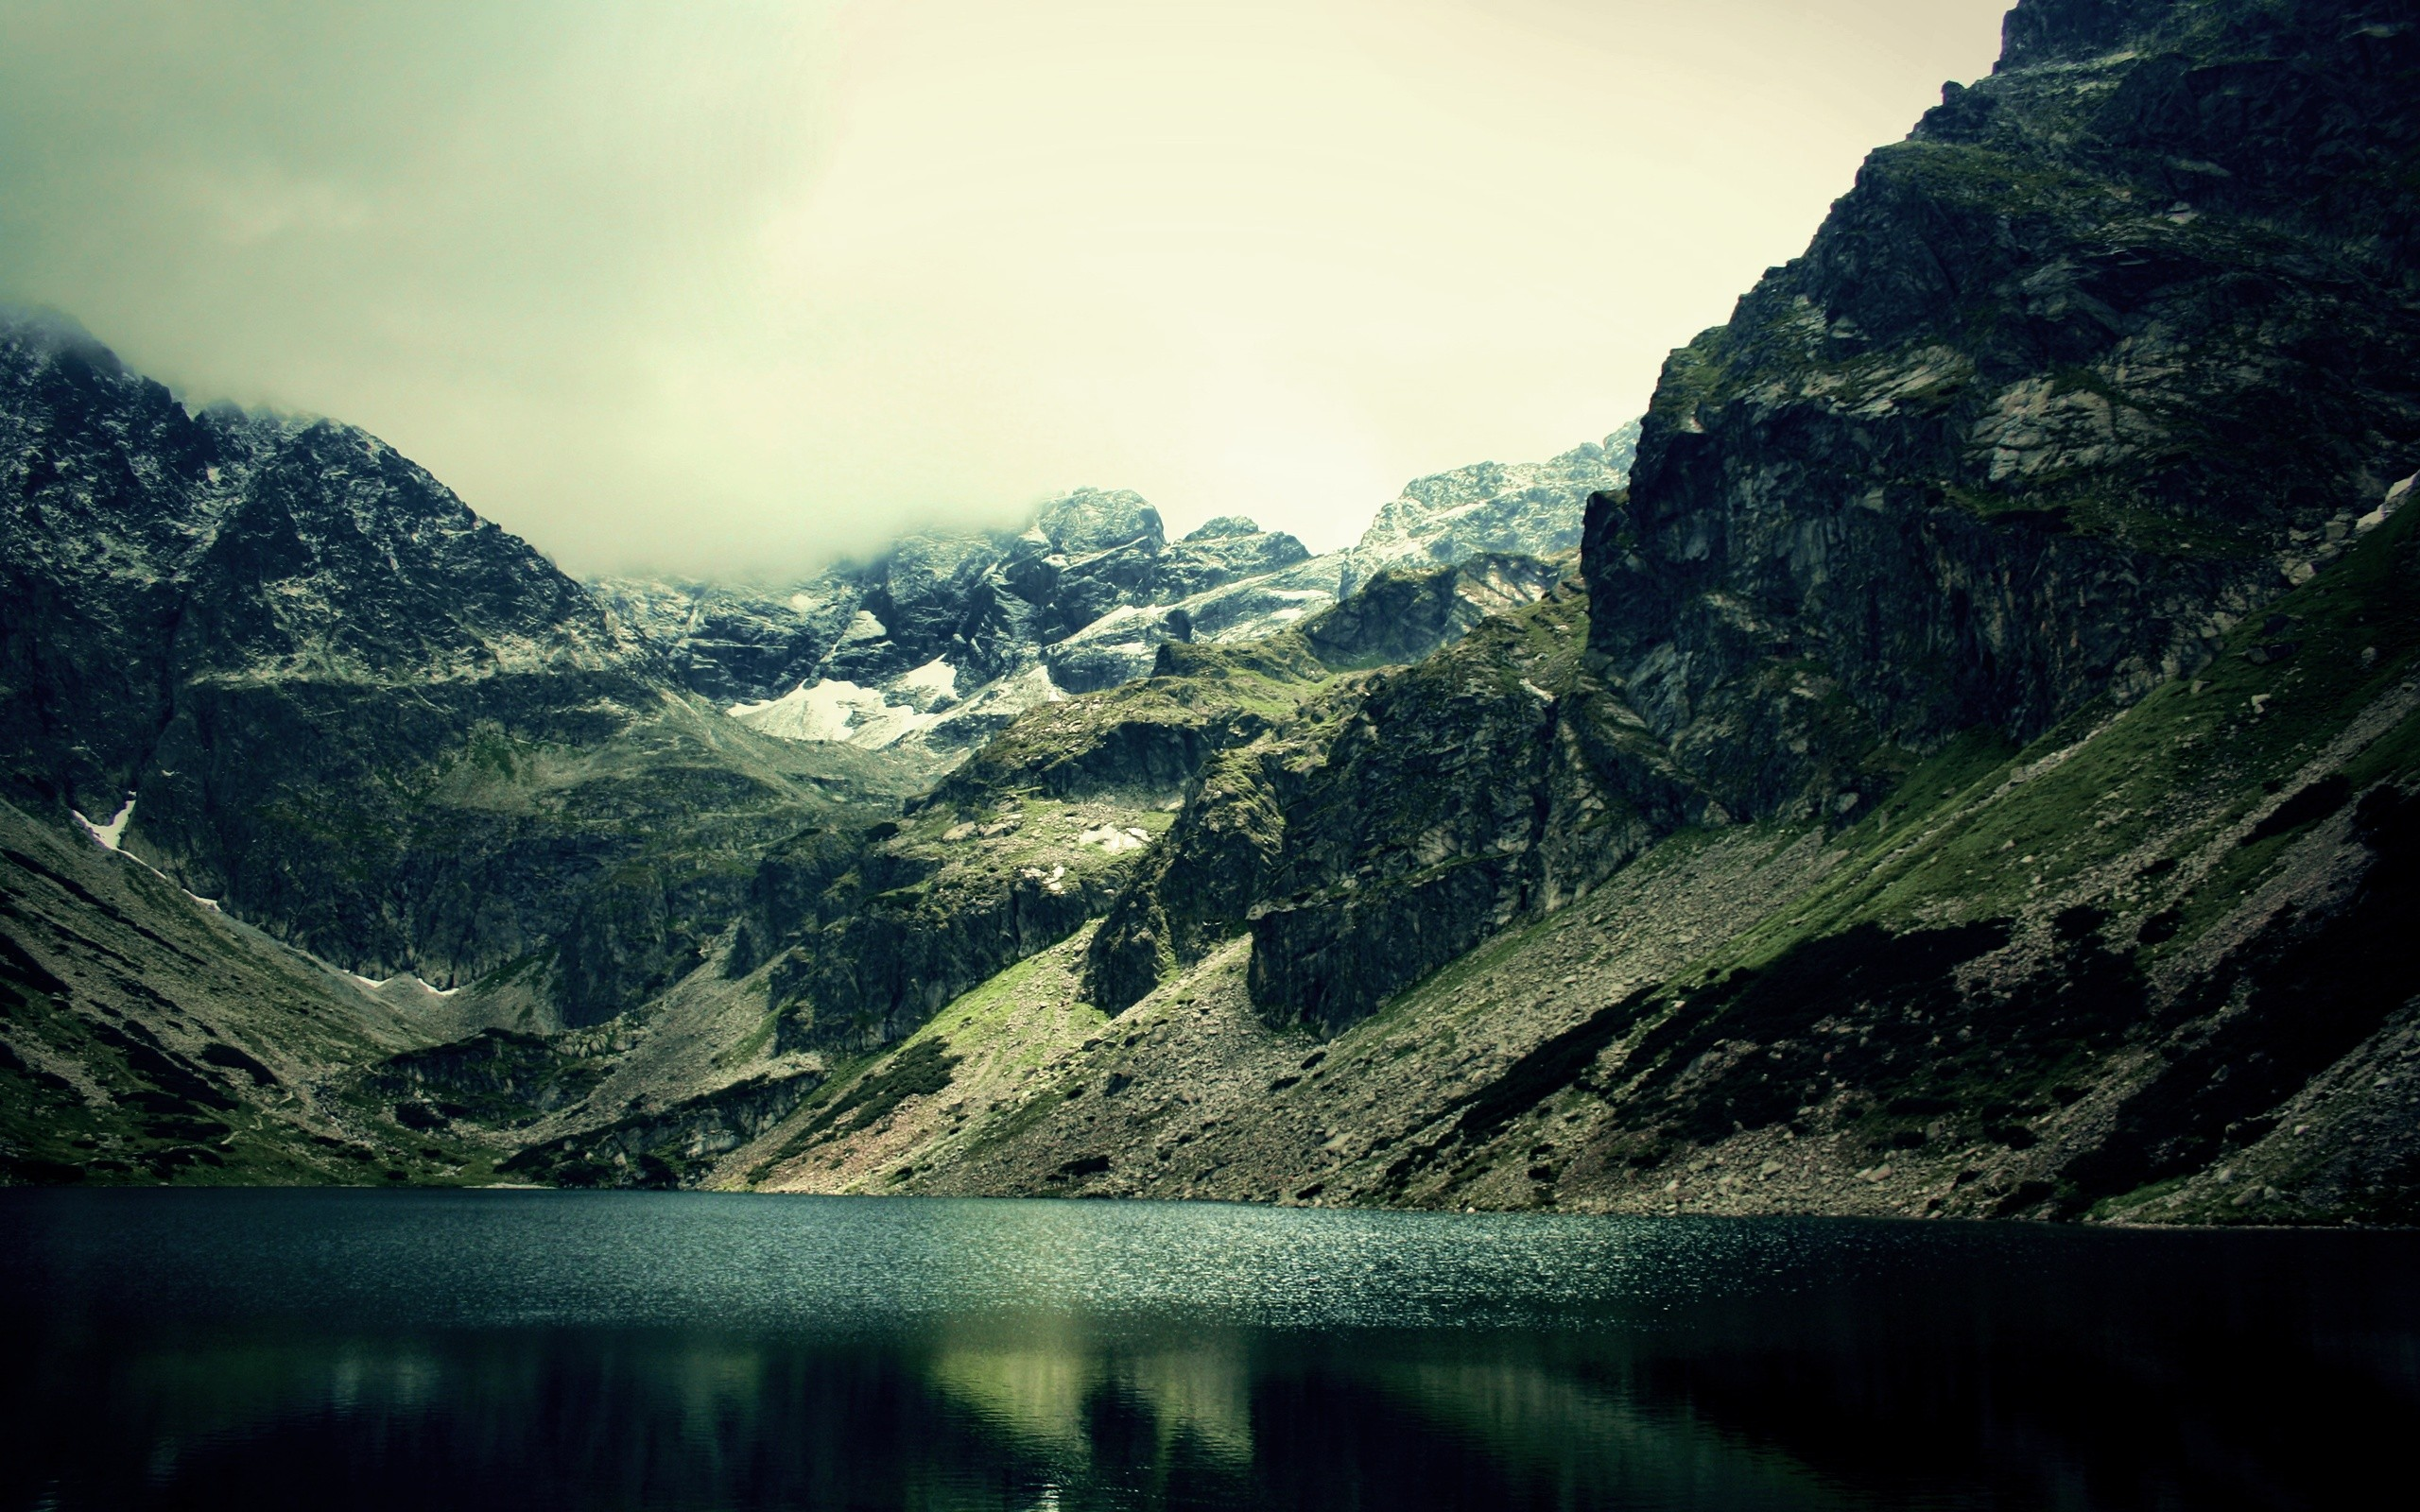 Hd wallpaper mountains - Gloomy Weather Over Mountain Lake Hd Wallpaper Download